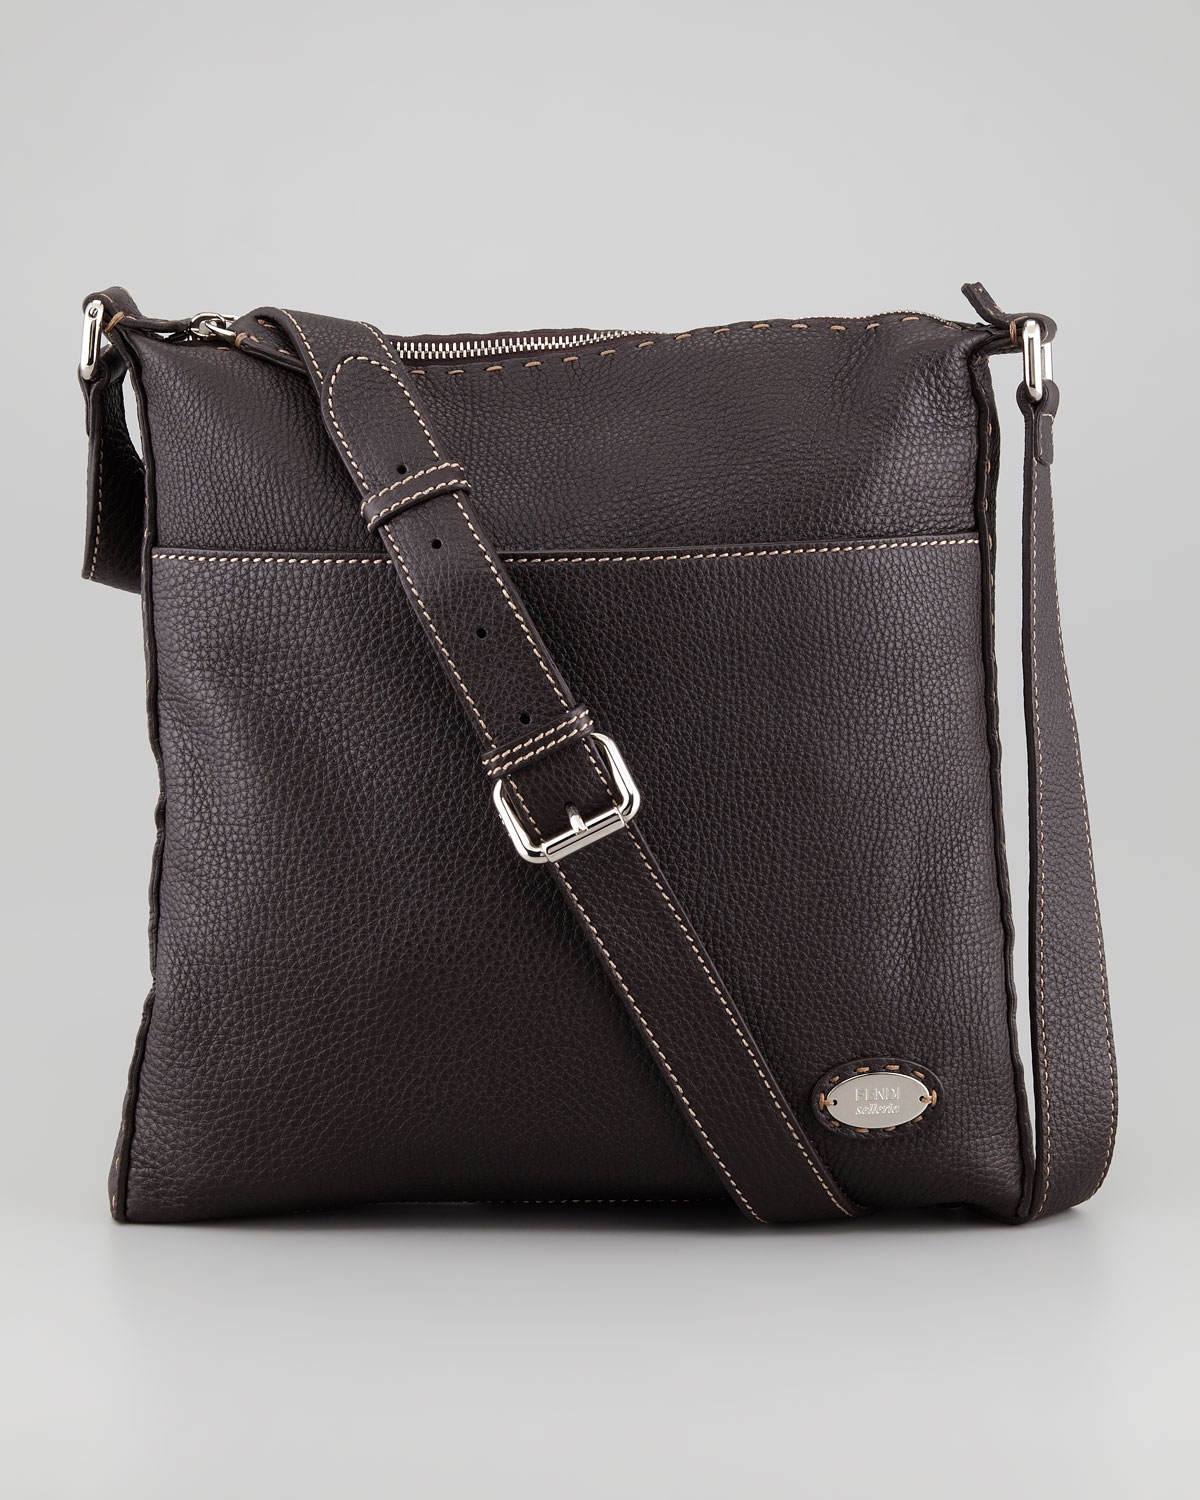 fb26a5f86a Lyst - Fendi Selleria Mens Medium Messenger Bag in Brown for Men